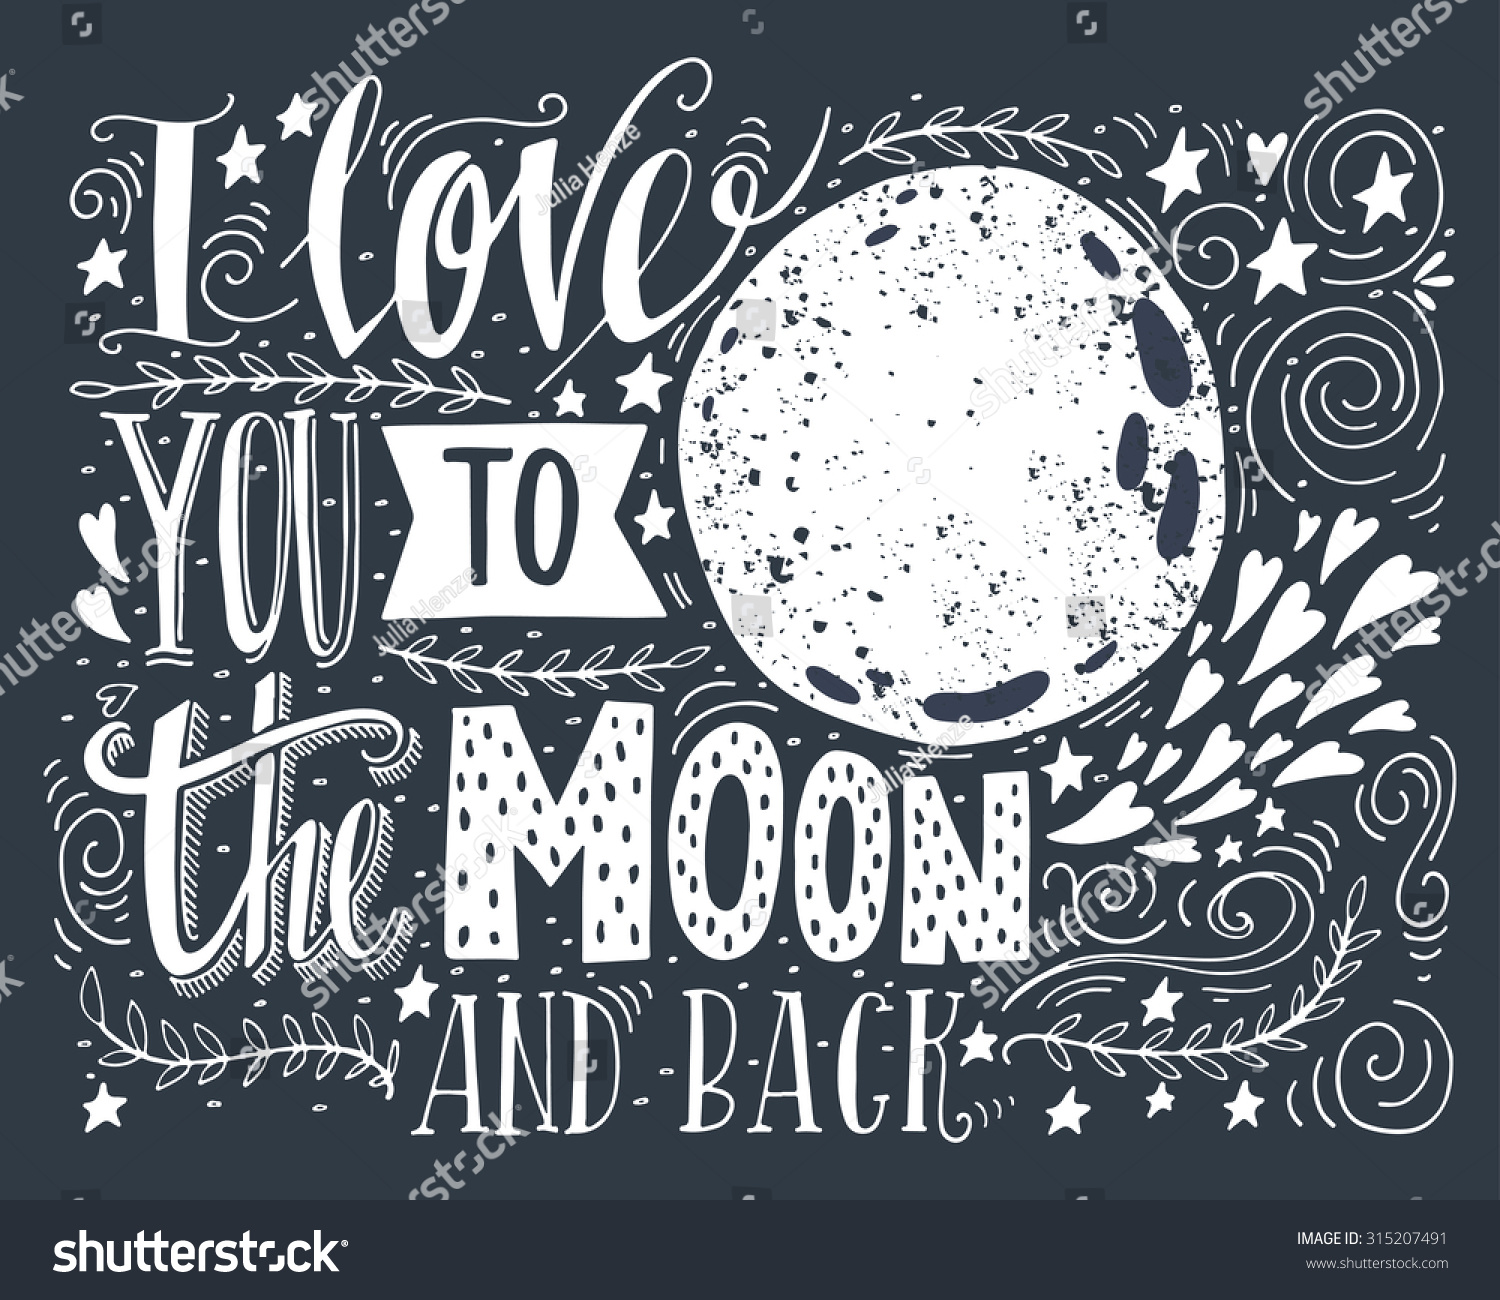 i love you to the moon and back hand drawn poster with a. Black Bedroom Furniture Sets. Home Design Ideas